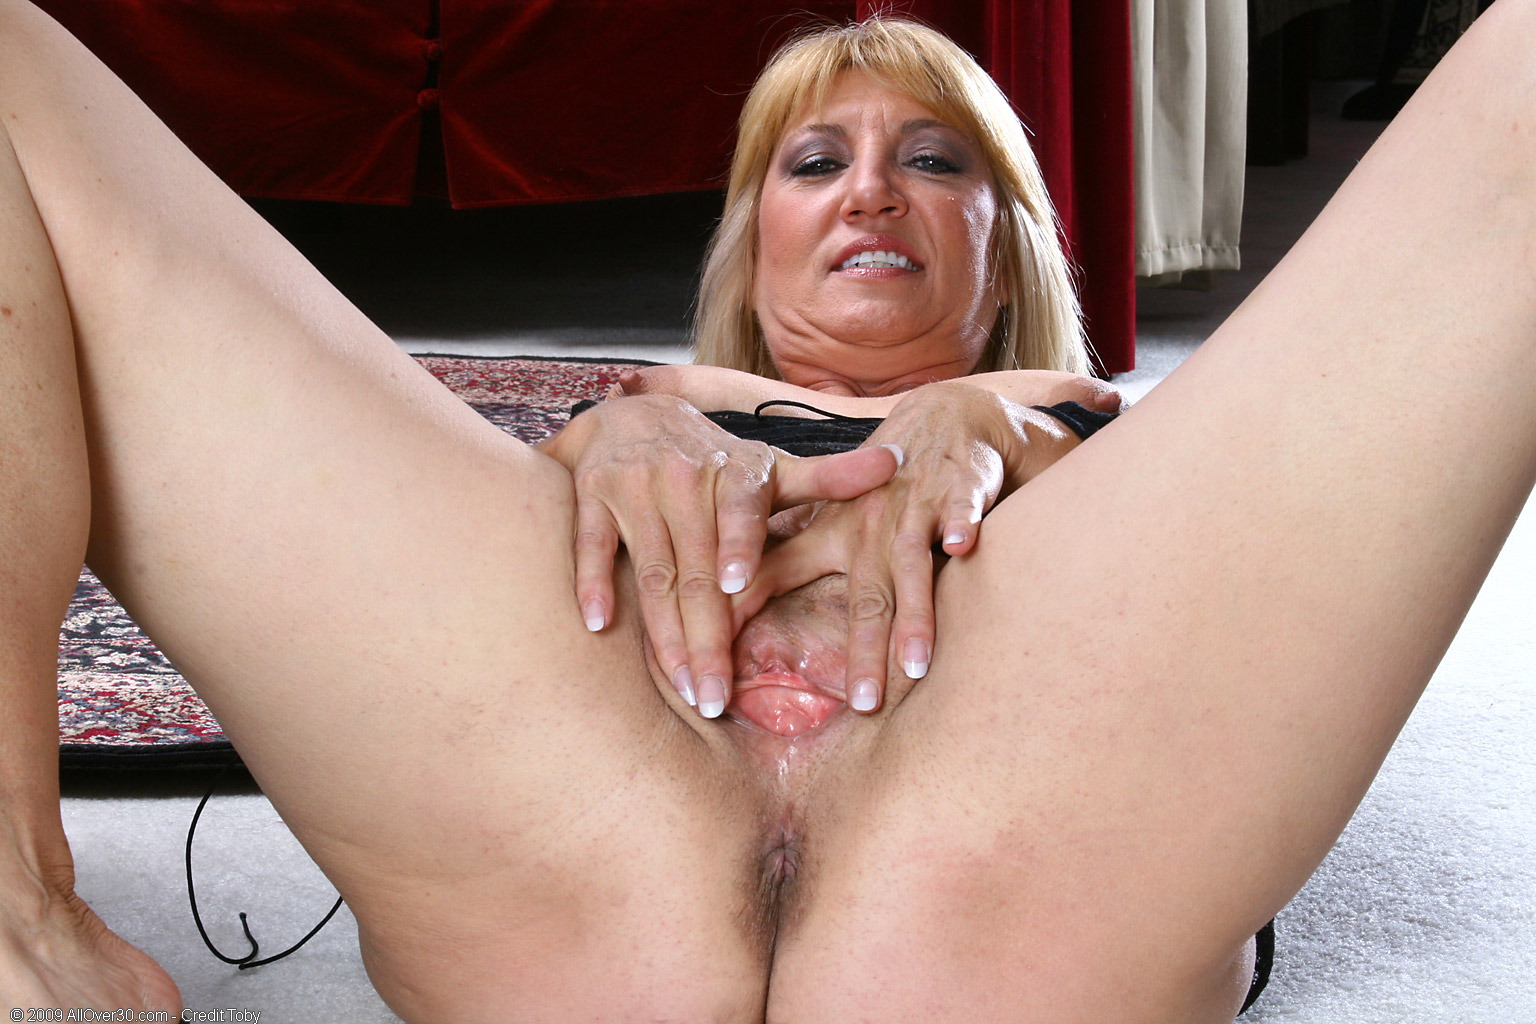 mother amp porno - Infieles, videos porno maduras